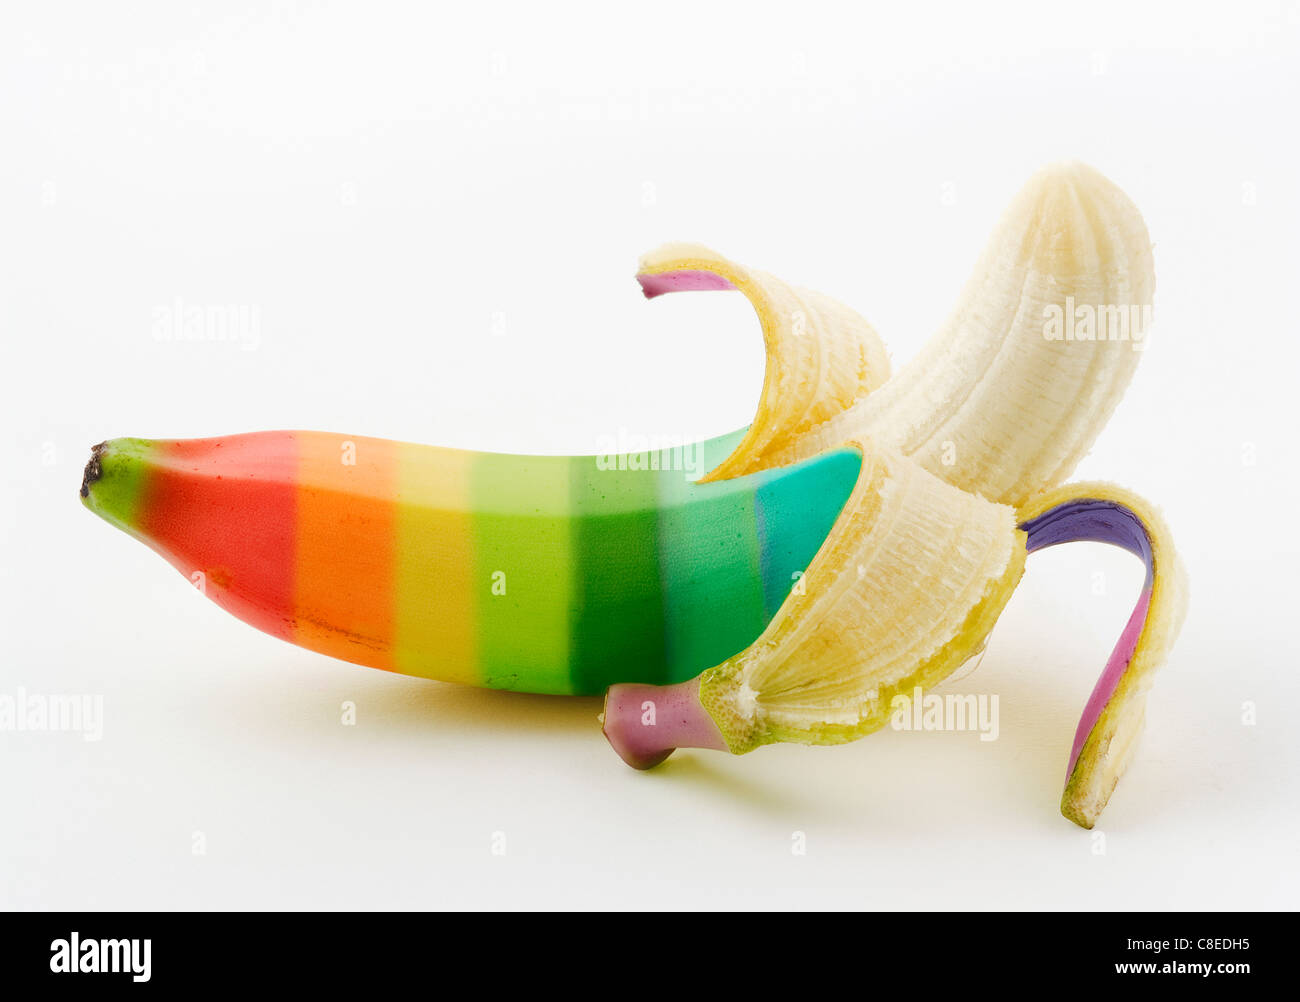 Multicolored banana - Stock Image